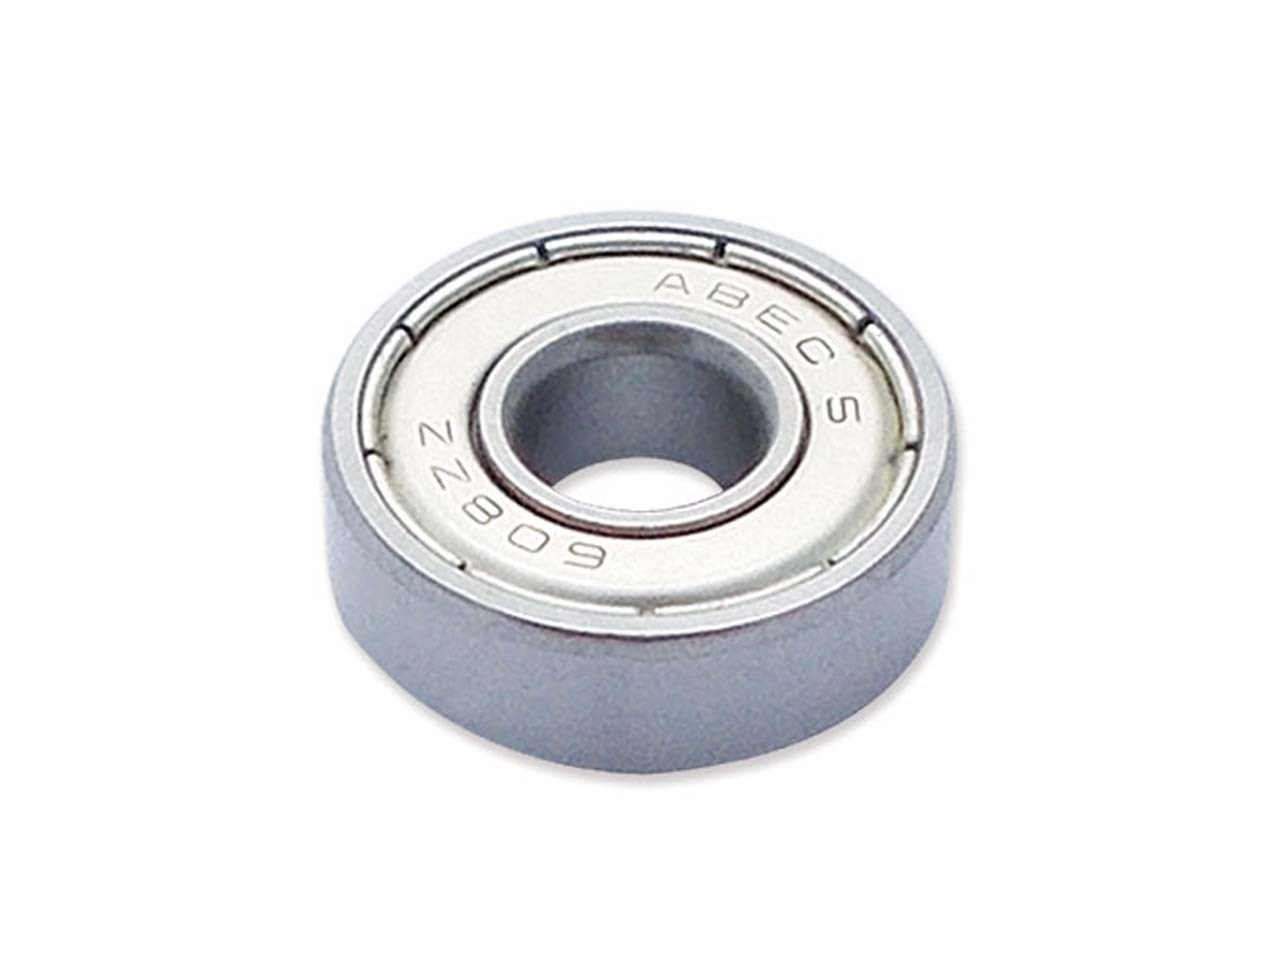 Trend WP-T20/026 Nose bearing 9mm x 24mm x 7mm 609Zz